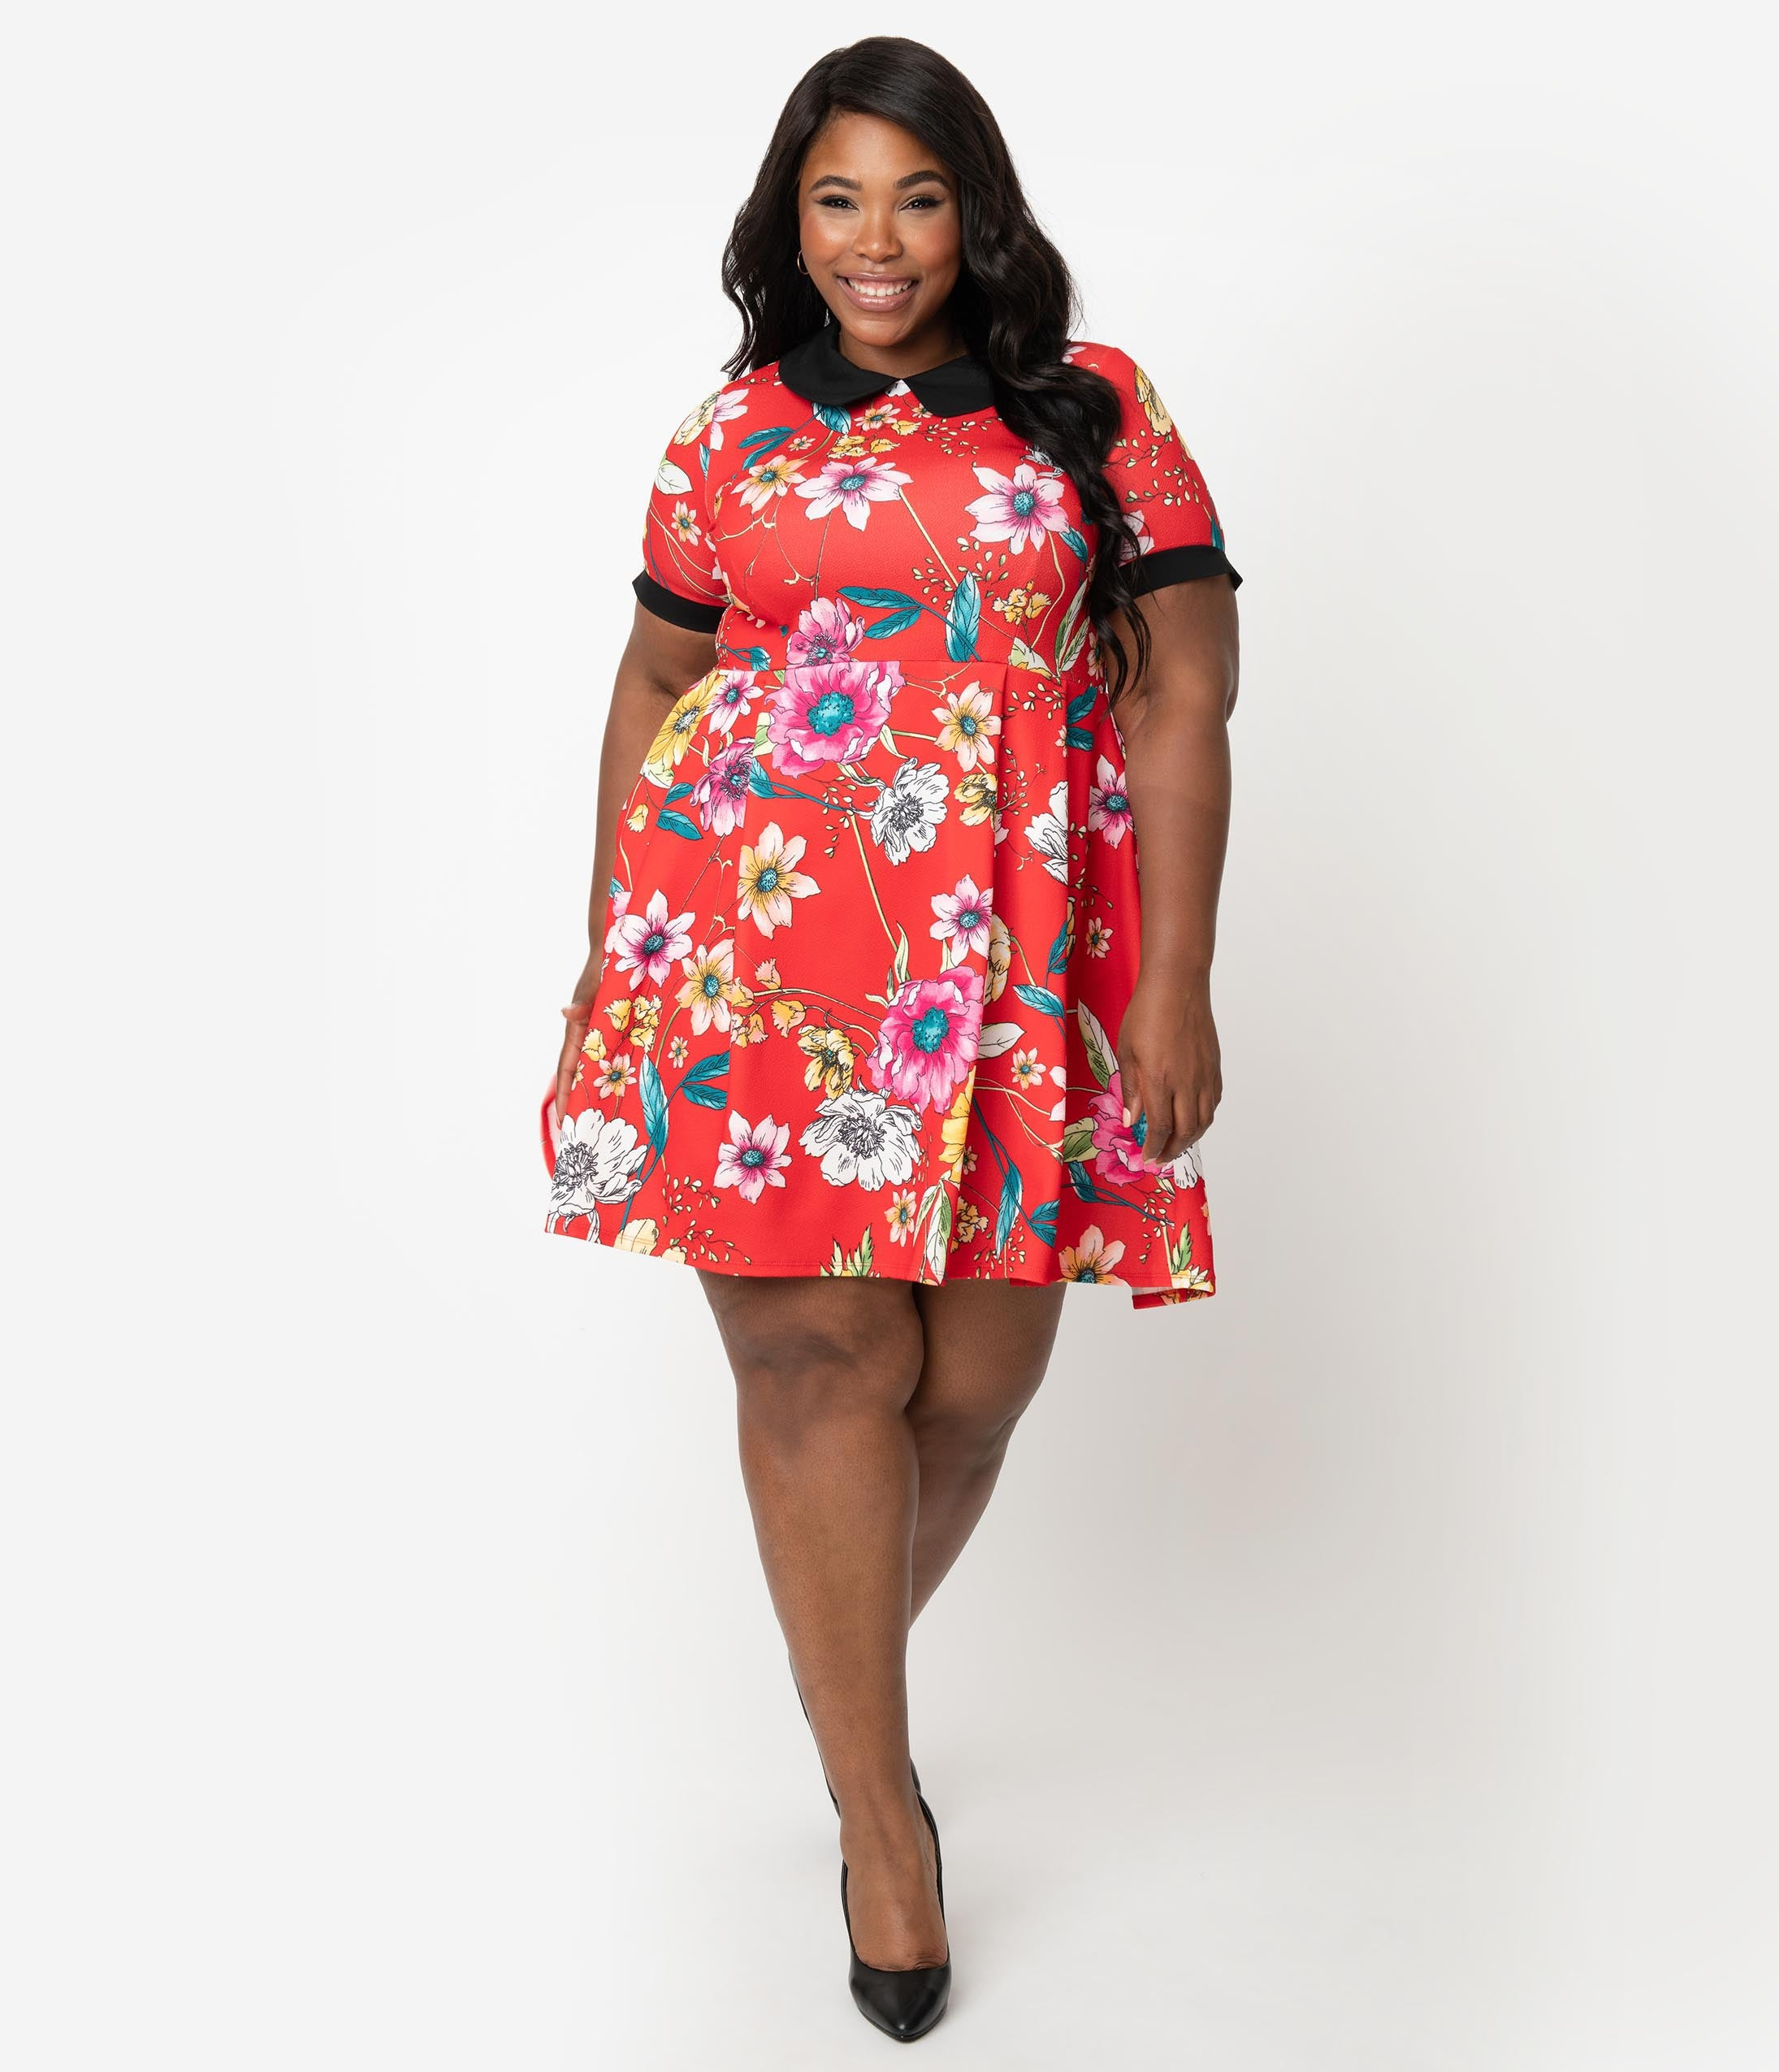 60s 70s Plus Size Dresses, Clothing, Costumes Smak Parlour Plus Size Red  Multicolor Floral Babe Revolution Fit  Flare Dress $78.00 AT vintagedancer.com